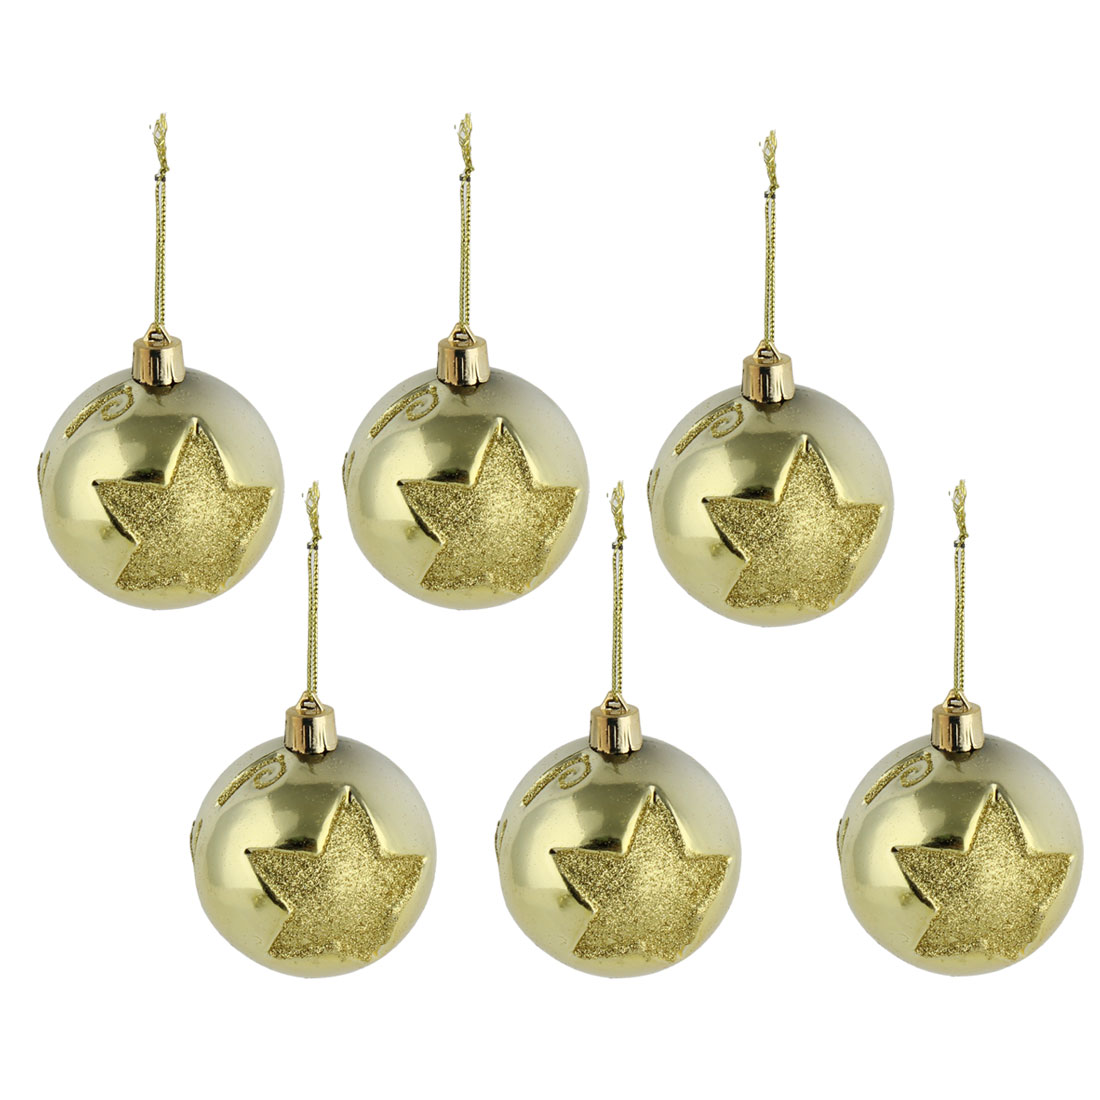 Party Christmas Star Pattern Artificial Collection Festive Ball Gold Tone 6 PCS